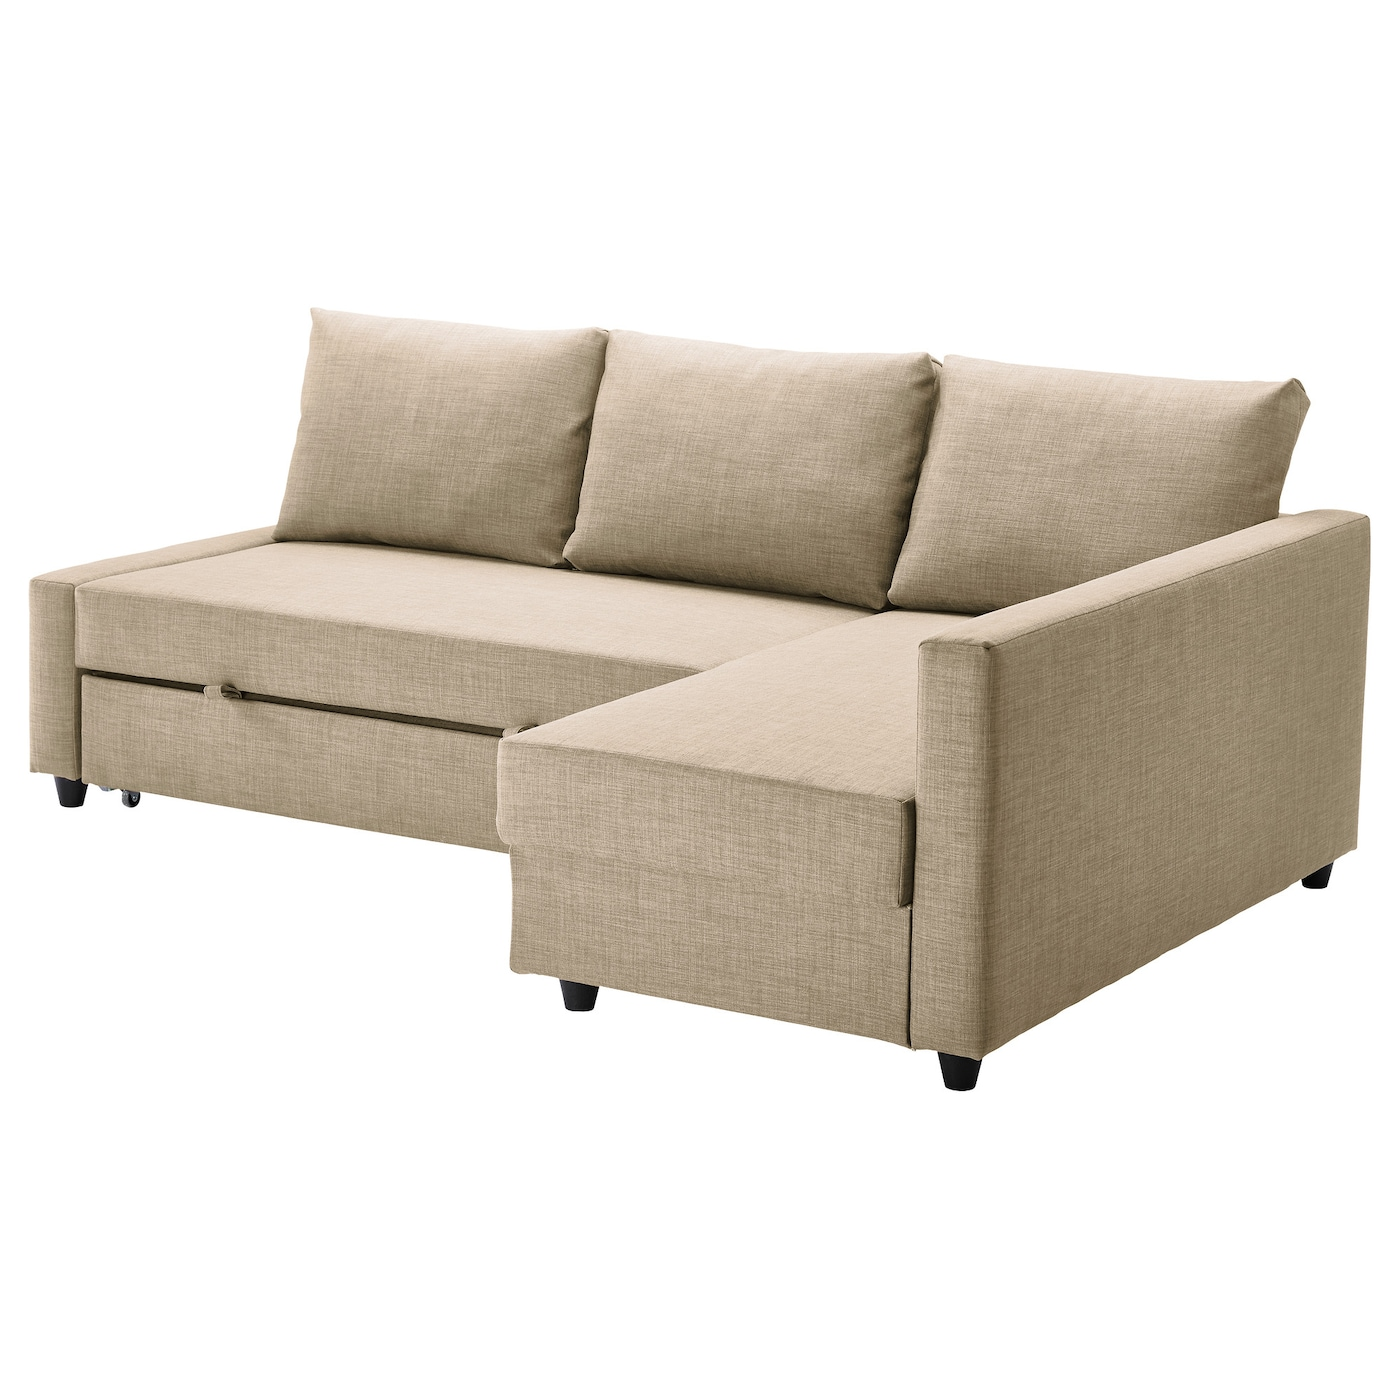 Friheten corner sofa bed with storage skiftebo beige ikea for Chaise longue montreal